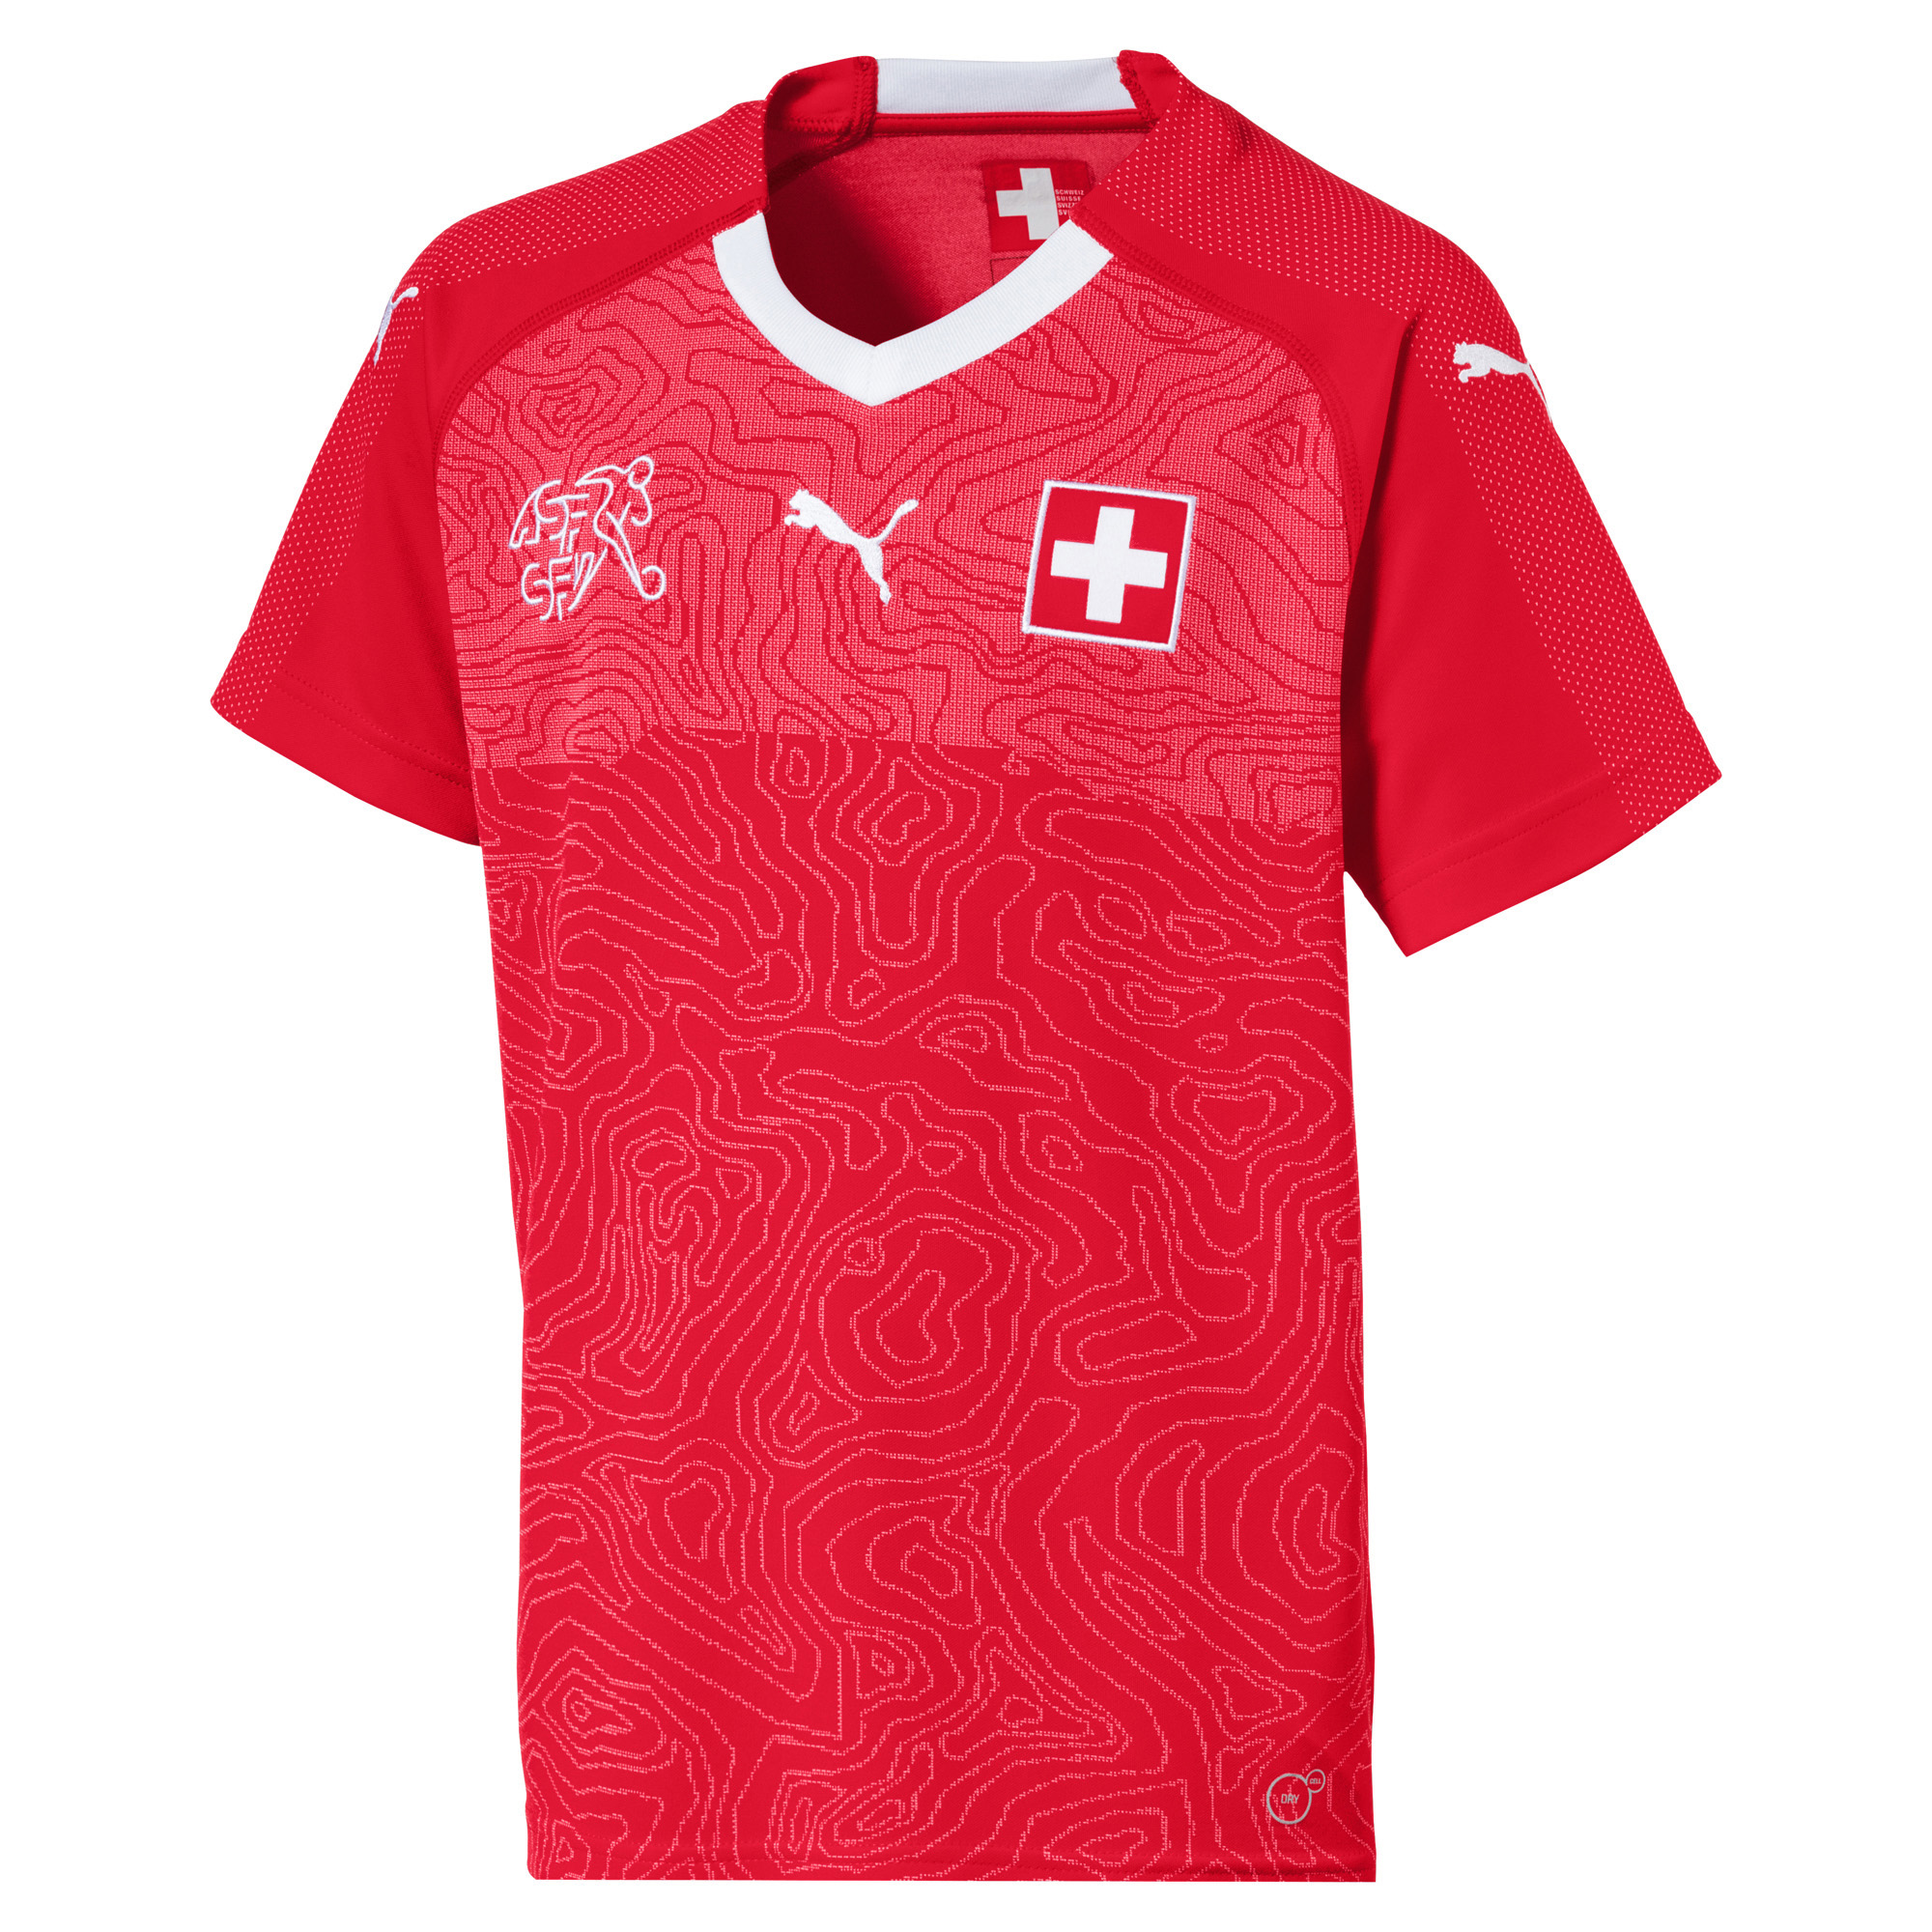 reputable site b1ff2 0d307 Schweiz Kinder WM Trikot 2018-19